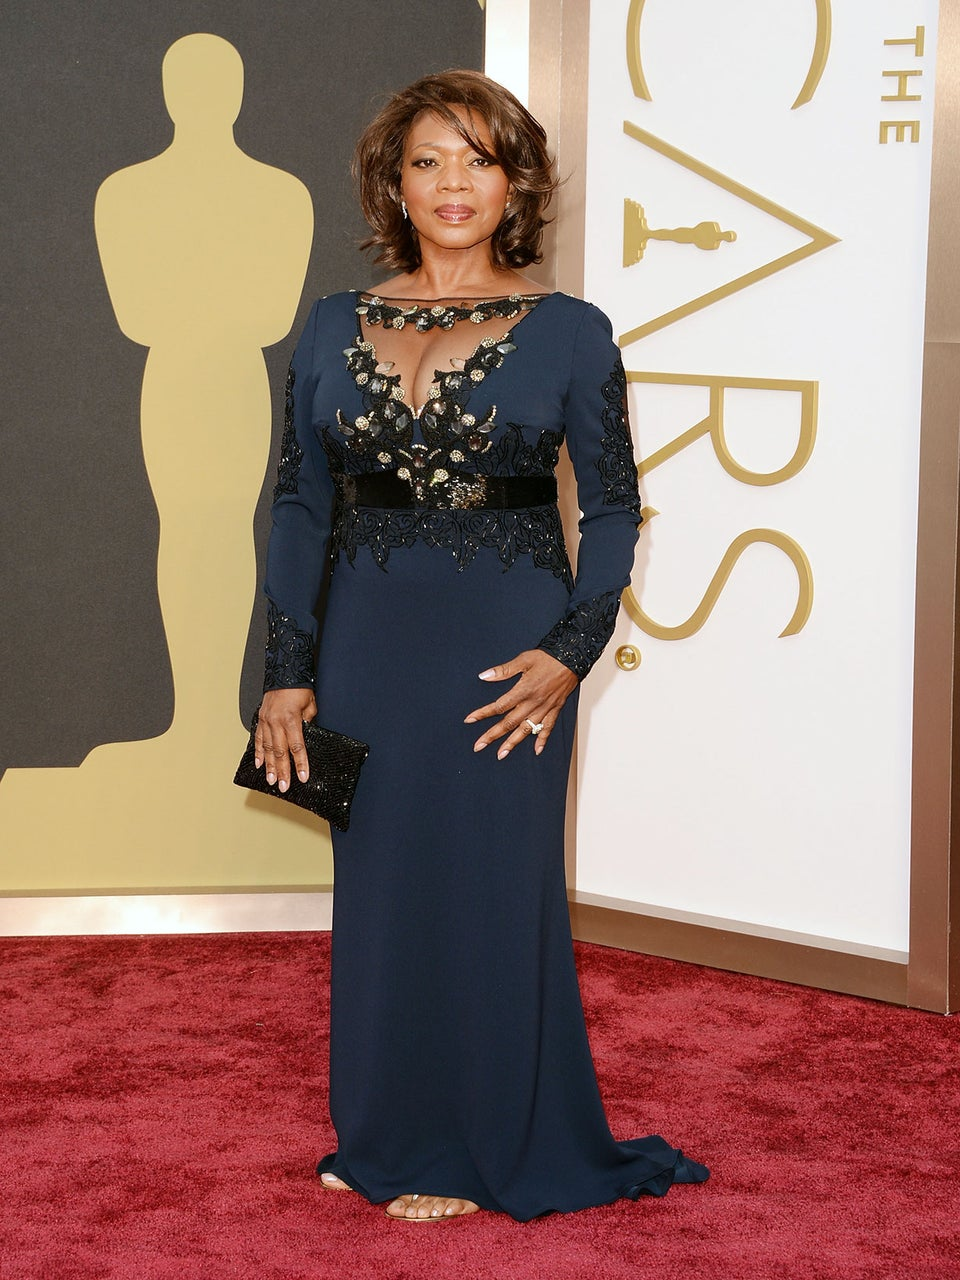 Alfre Woodard to Play President in NBC's 'State of Affairs'